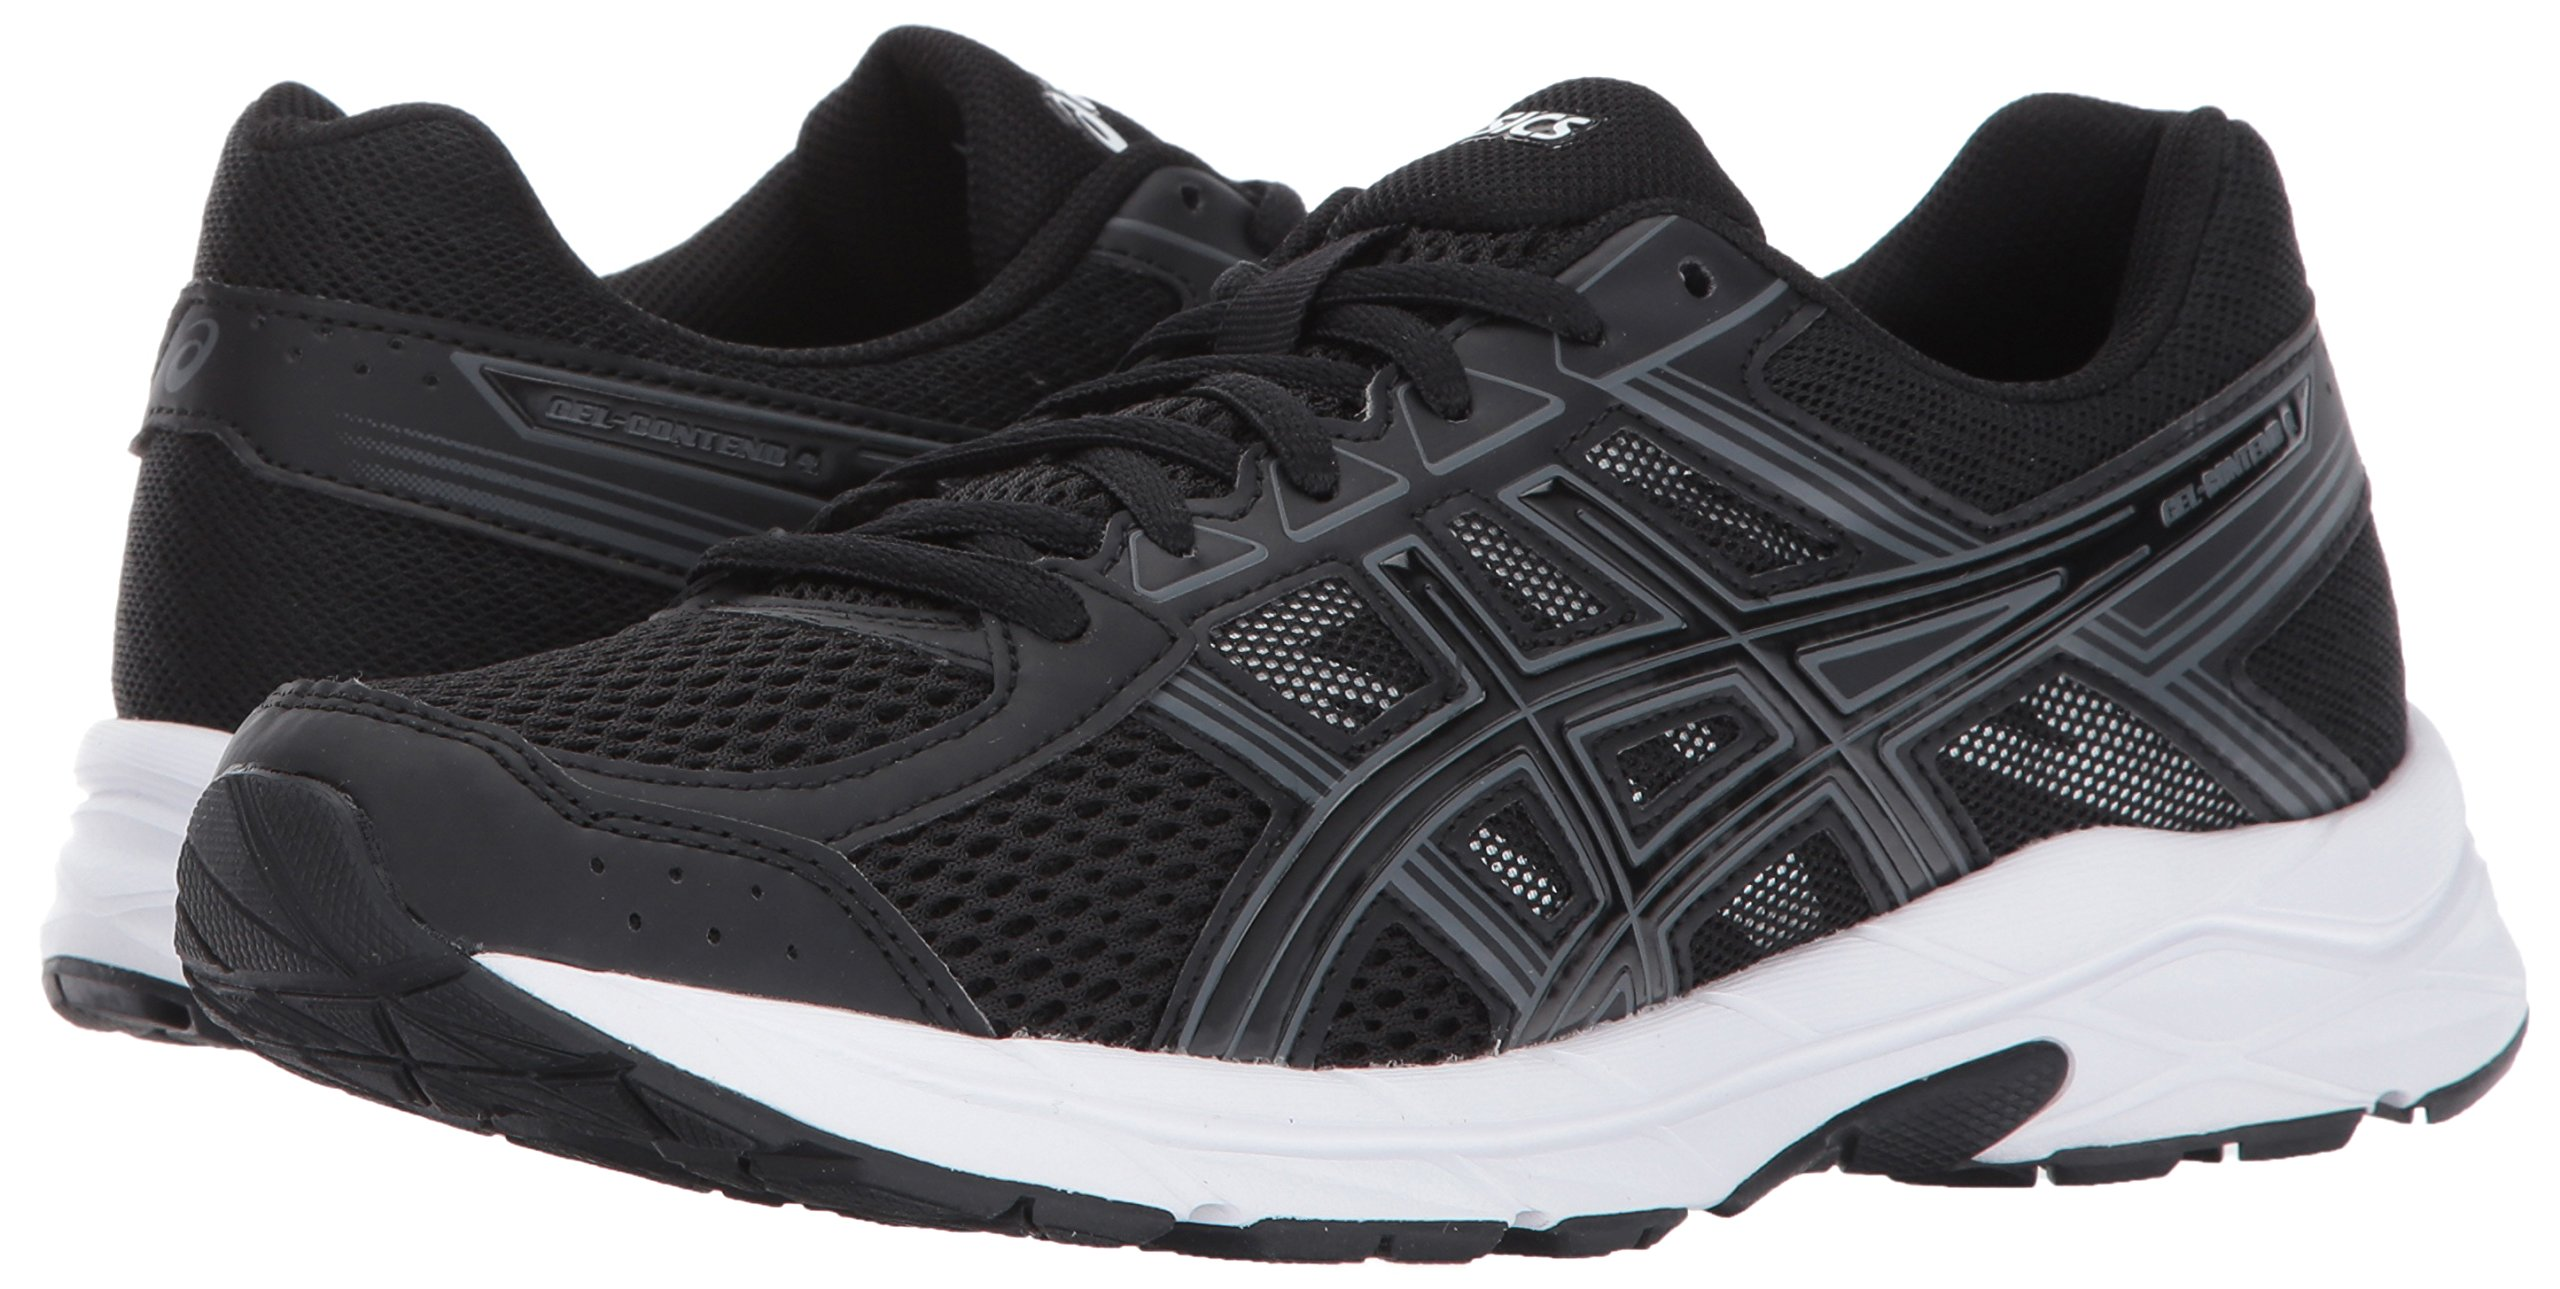 ASICS Womens Gel-Contend 4 Running Shoe, Black/Carbon, 6 D US by ASICS (Image #6)